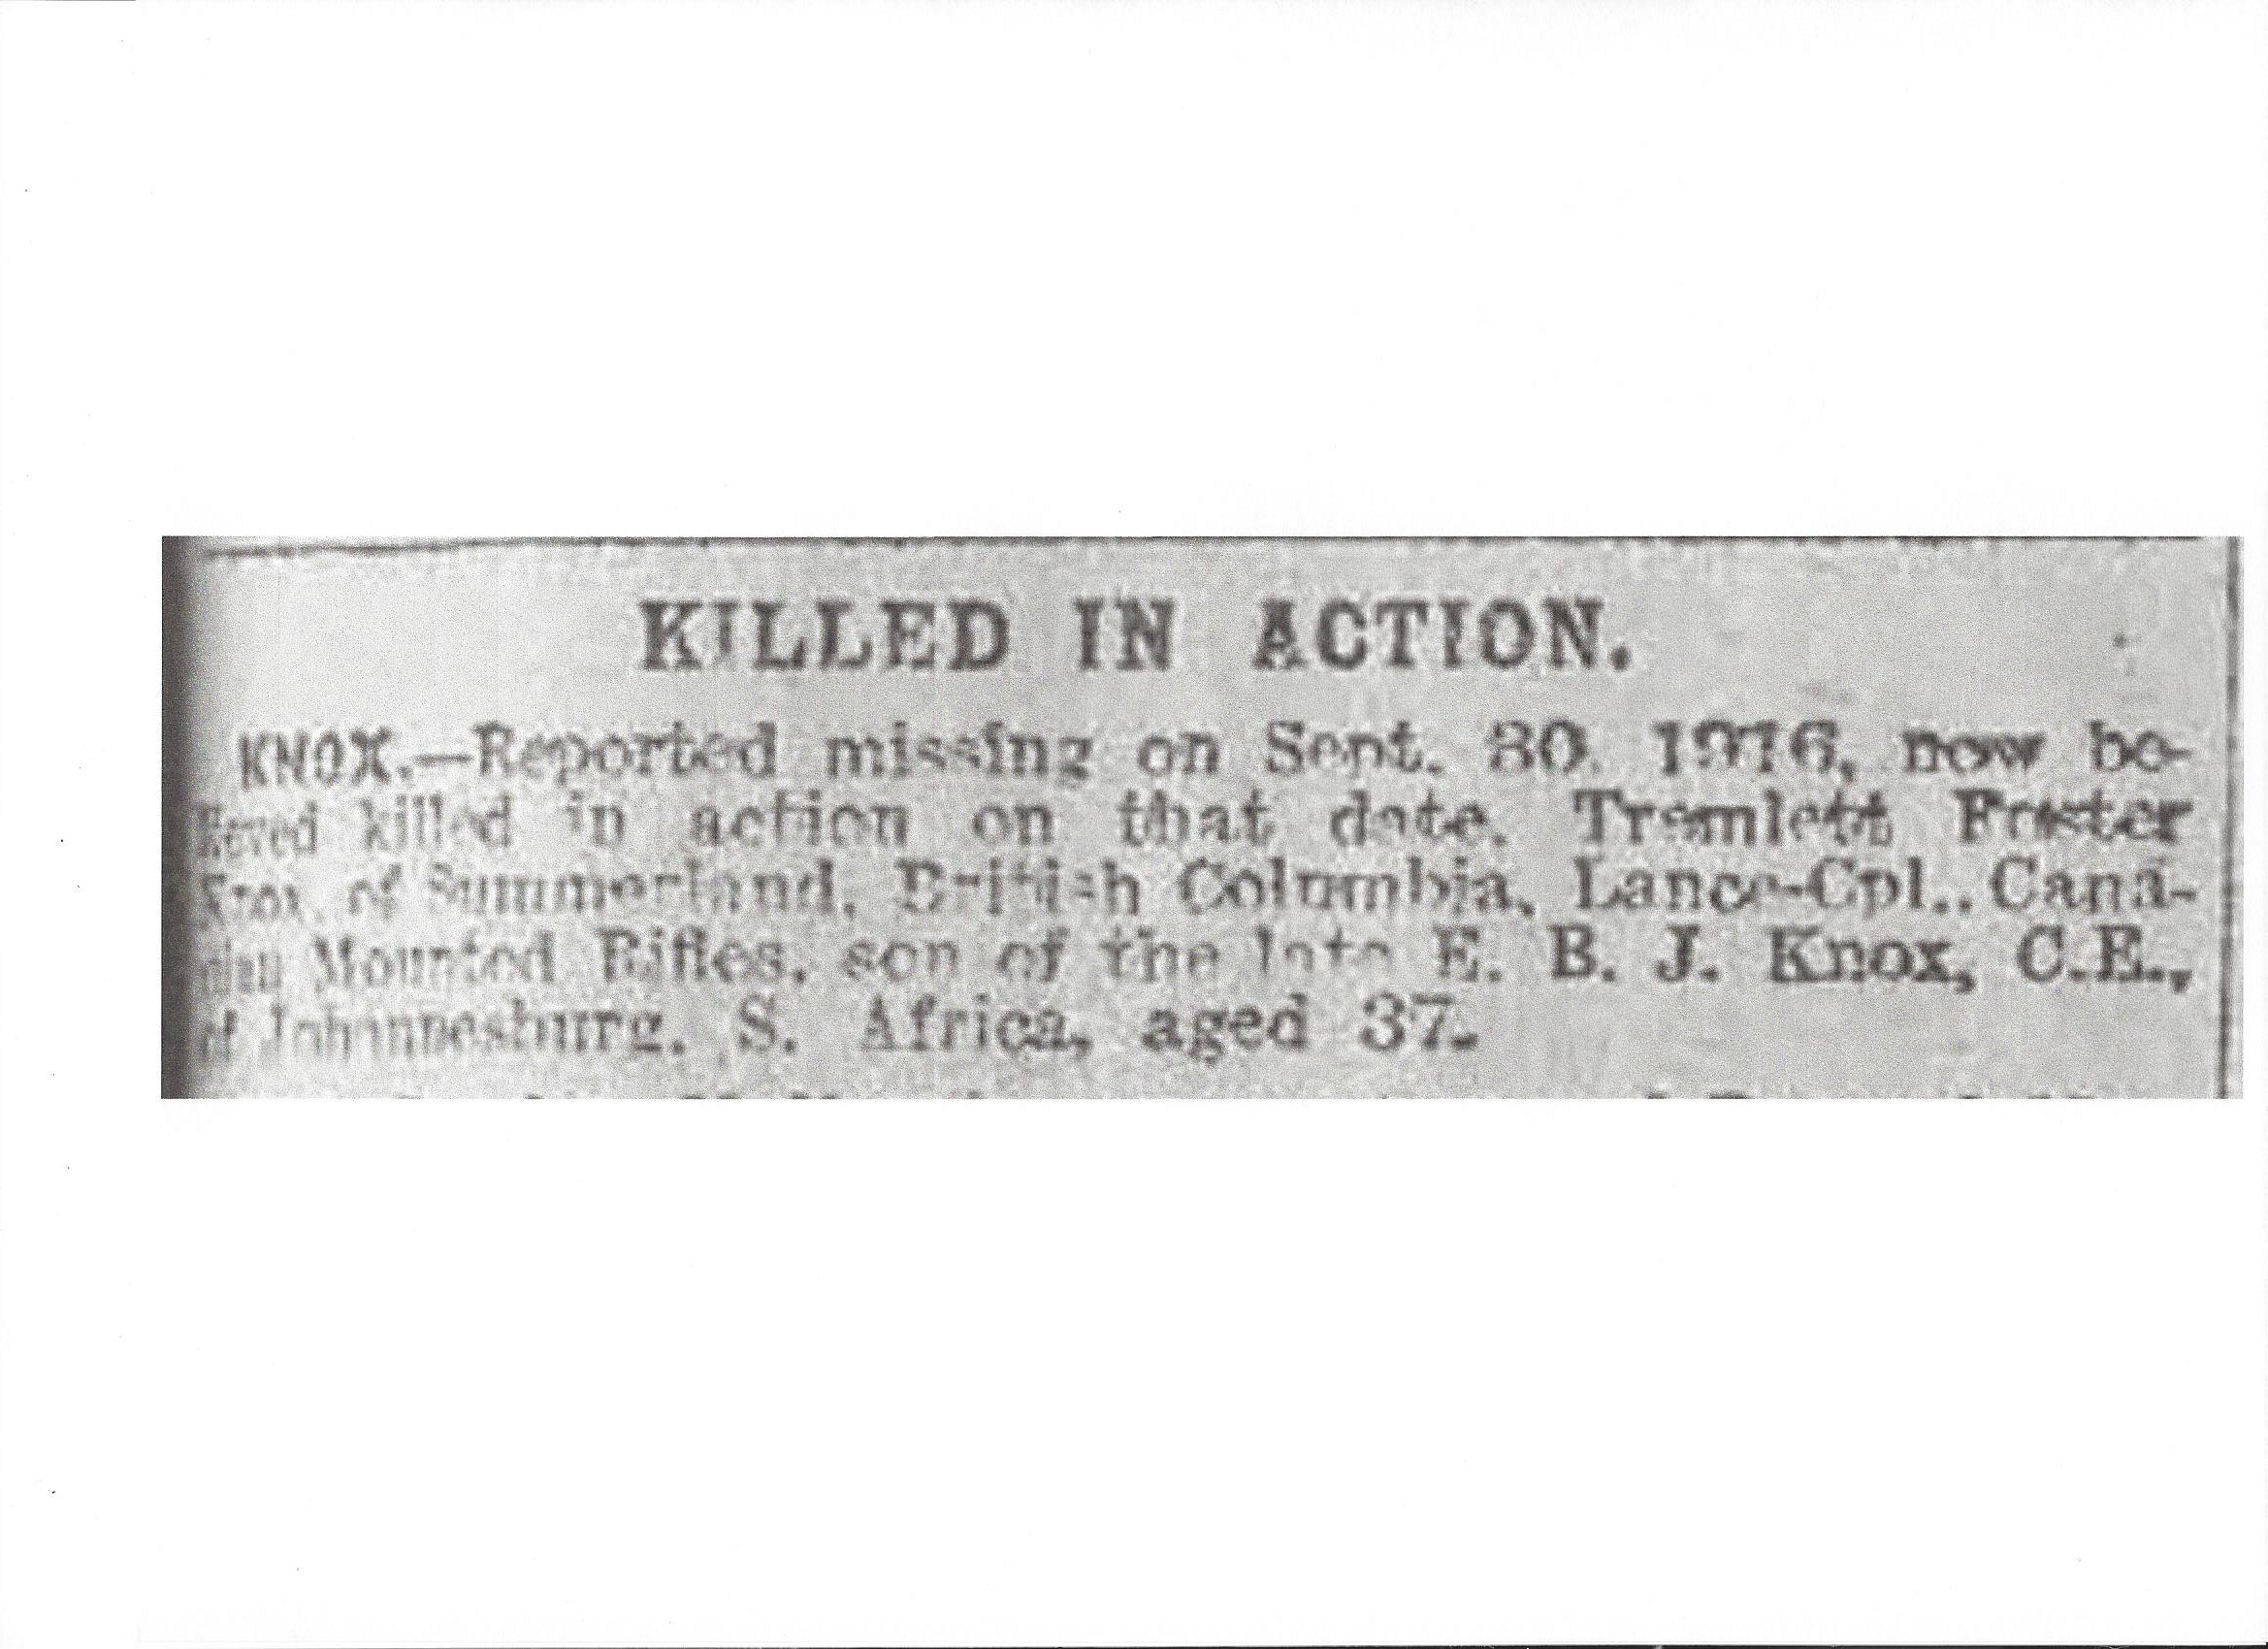 Newspaper clipping– Newspaper clipping from the Daily Telegraph of November 13, 1917. Image taken from web address of http://www.telegraph.co.uk/news/ww1-archive/12214938/Daily-Telegraph-November-13-1917.html